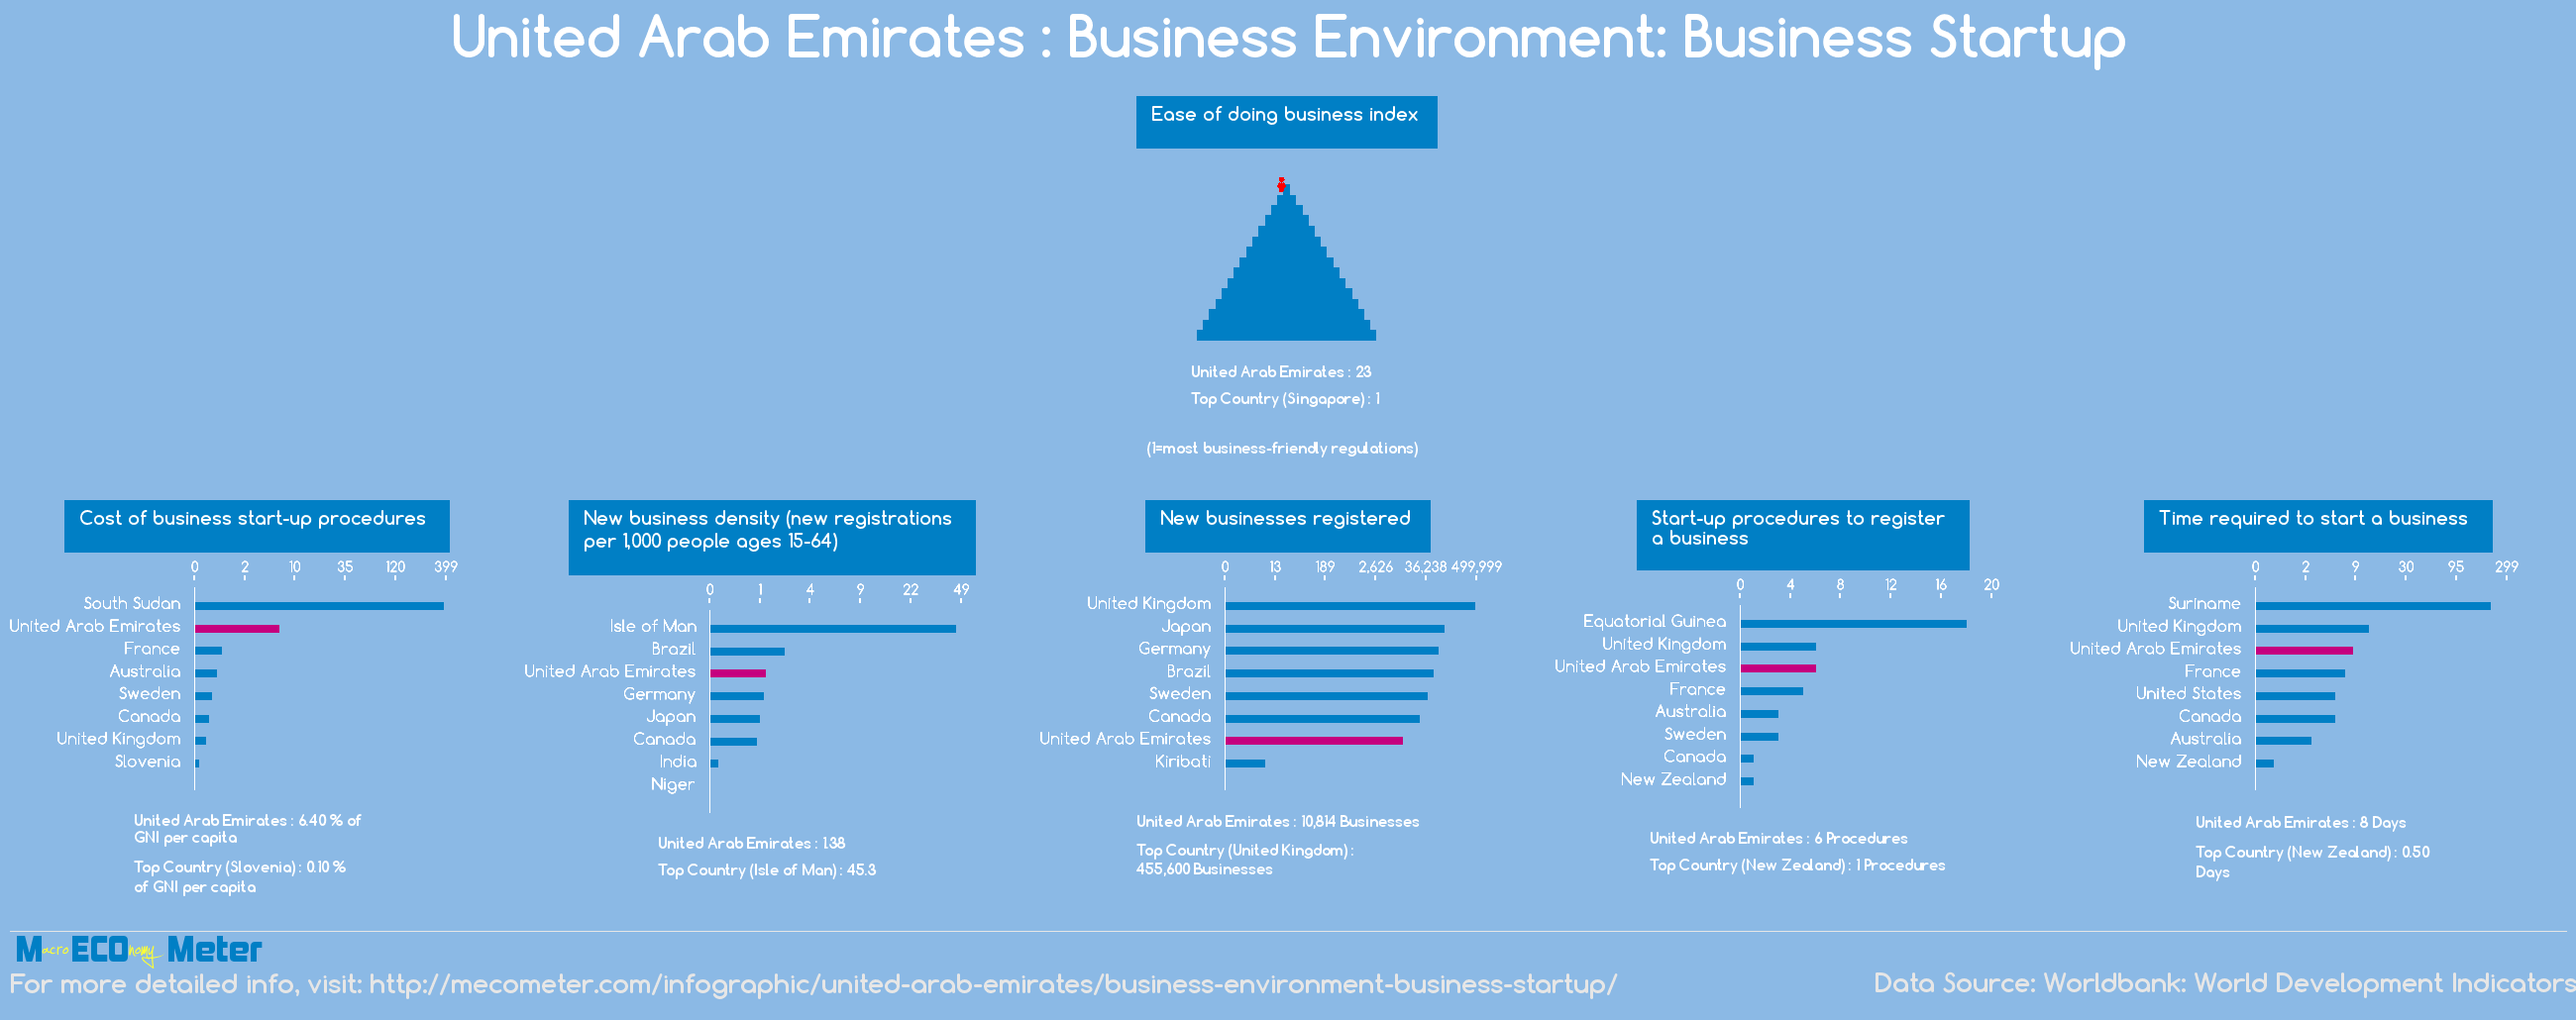 United Arab Emirates : Business Environment: Business Startup